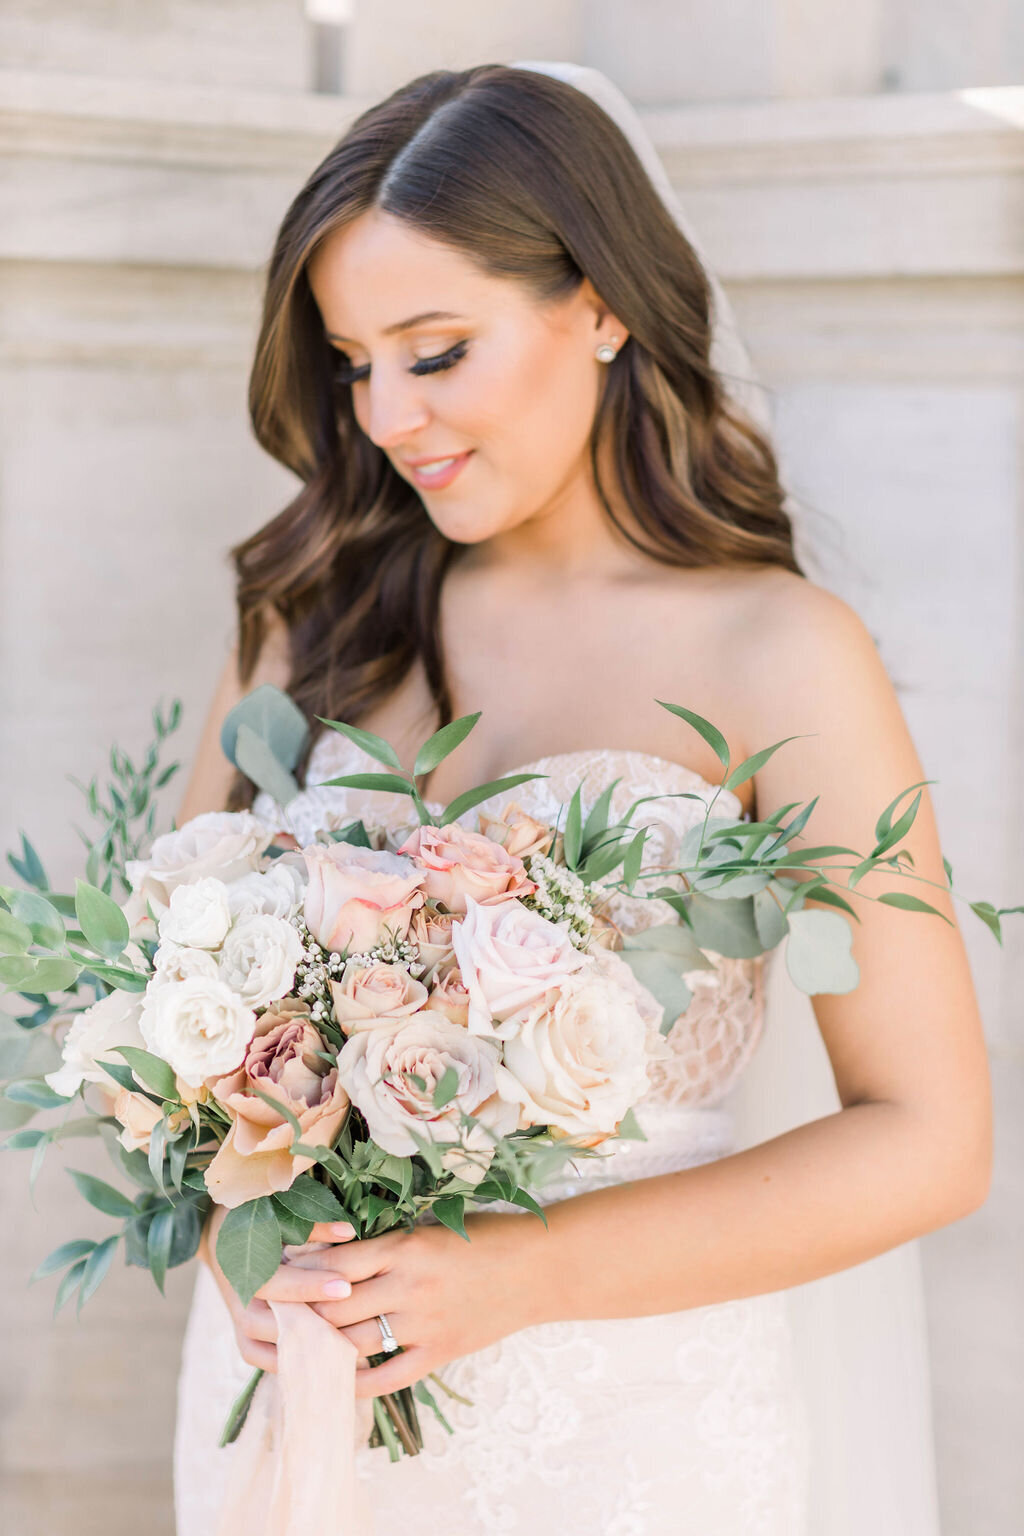 Fine art bridal bouquet photographed by Paige Michelle Photography on wedding day in Bowling Green, KY